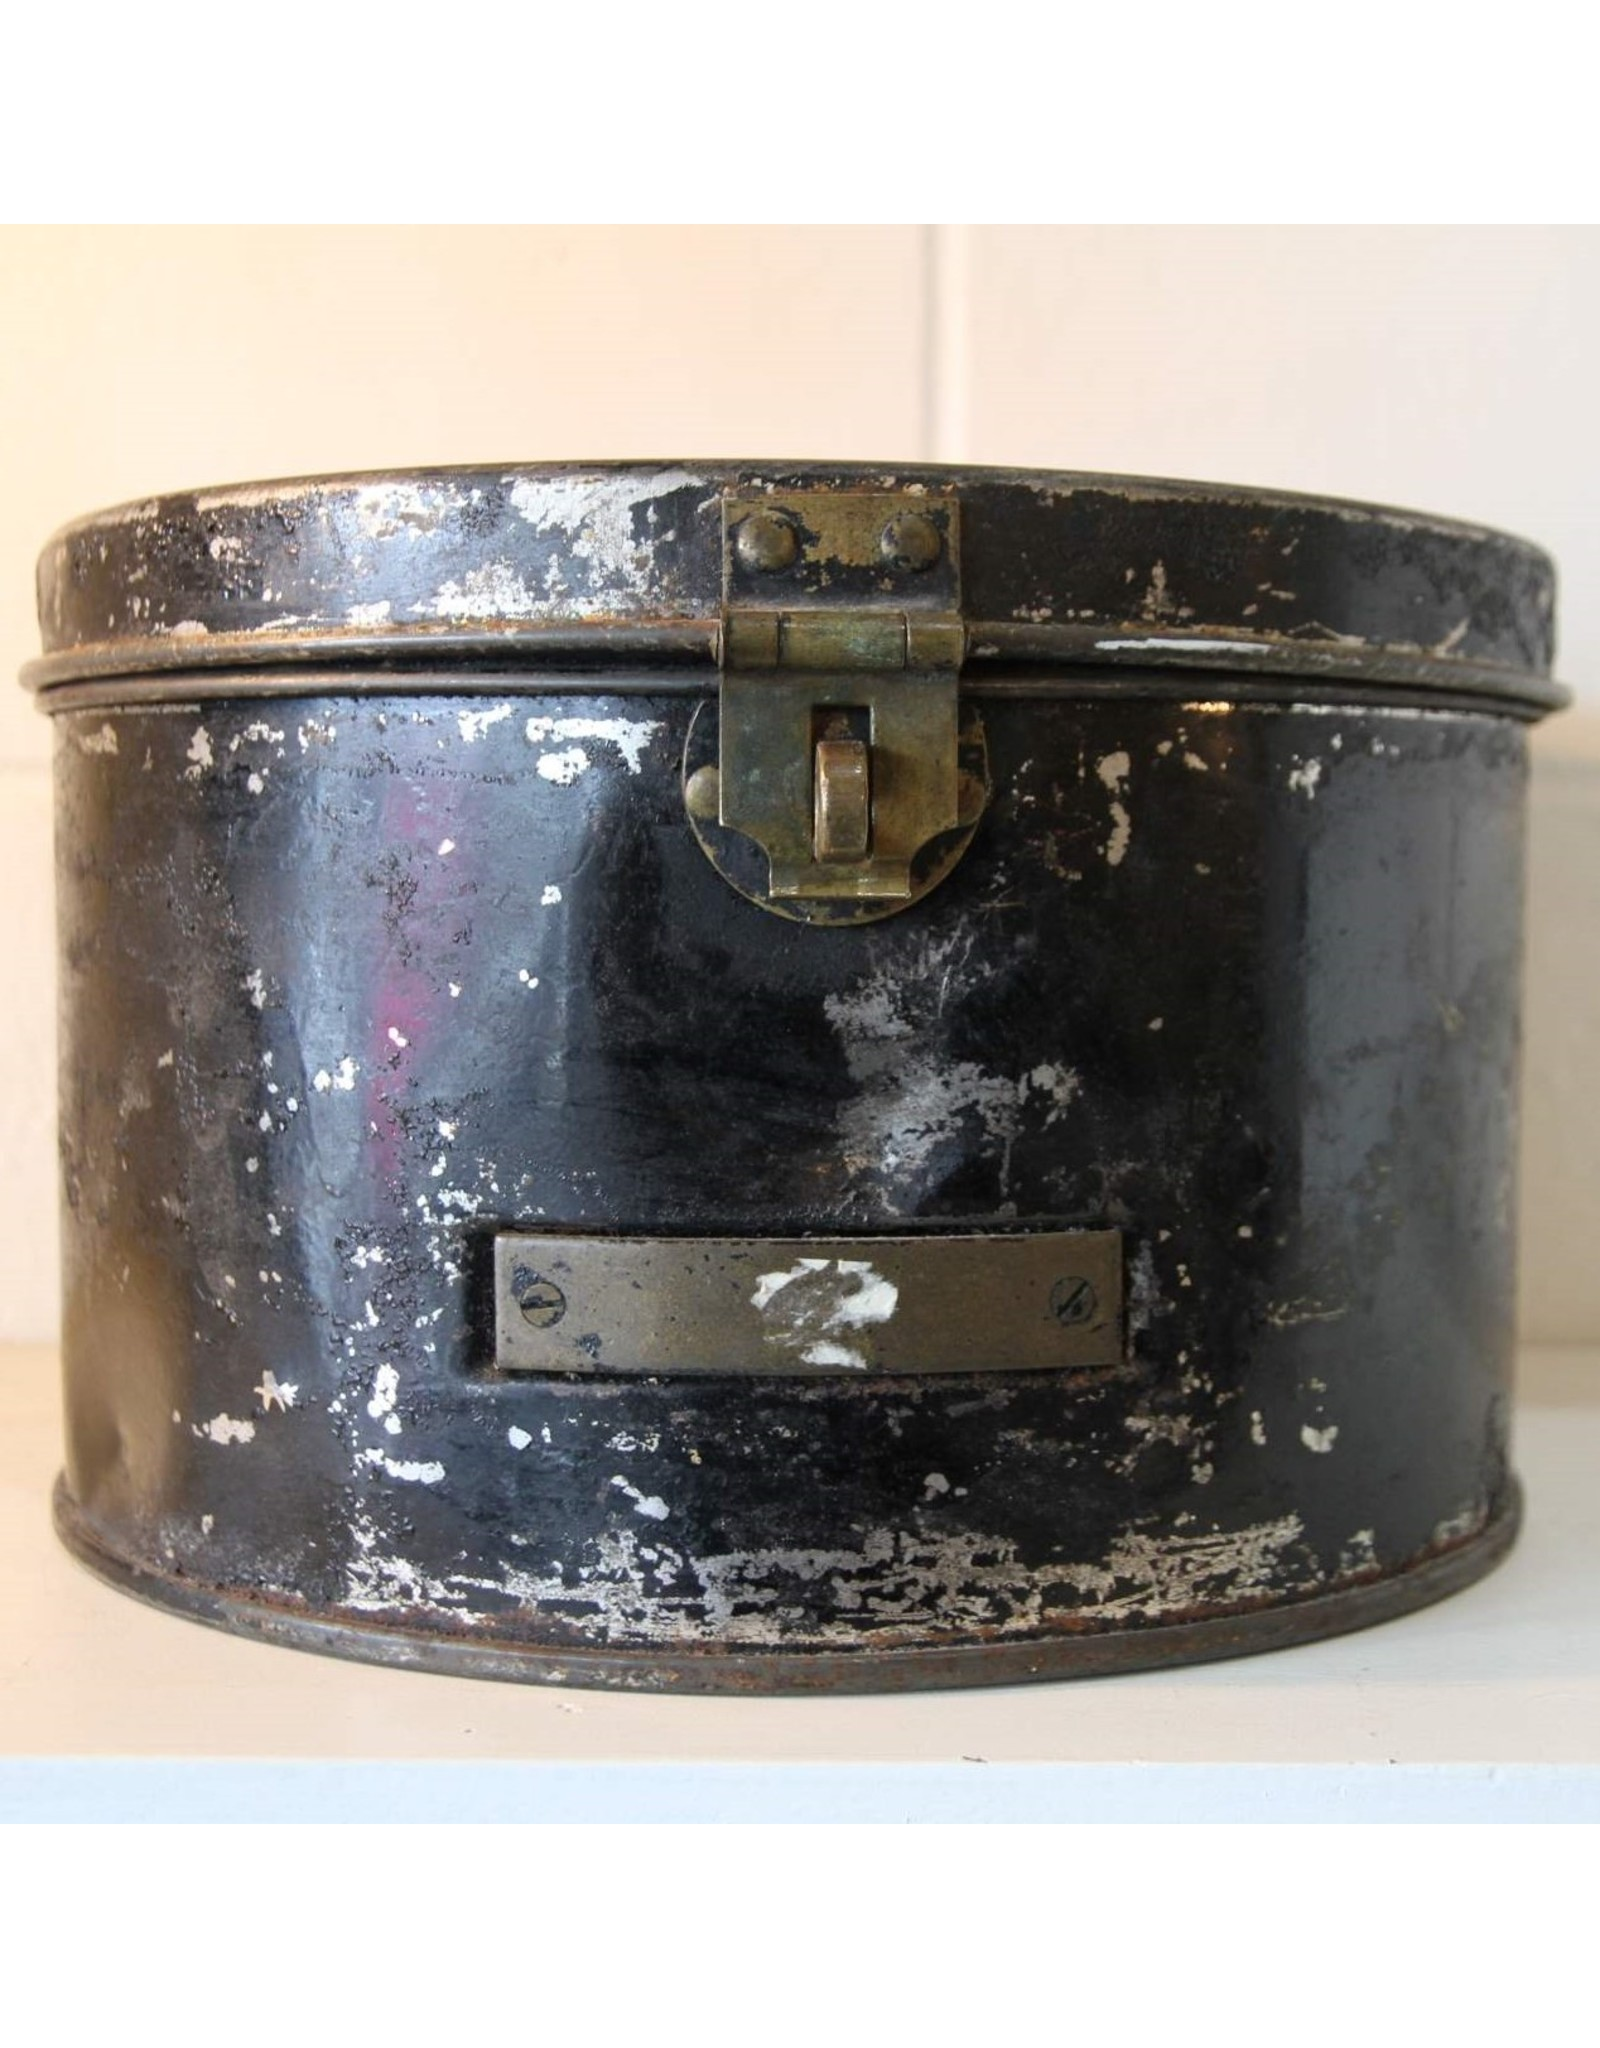 Tin box with lid - round, hinged, brass clasp, black paint